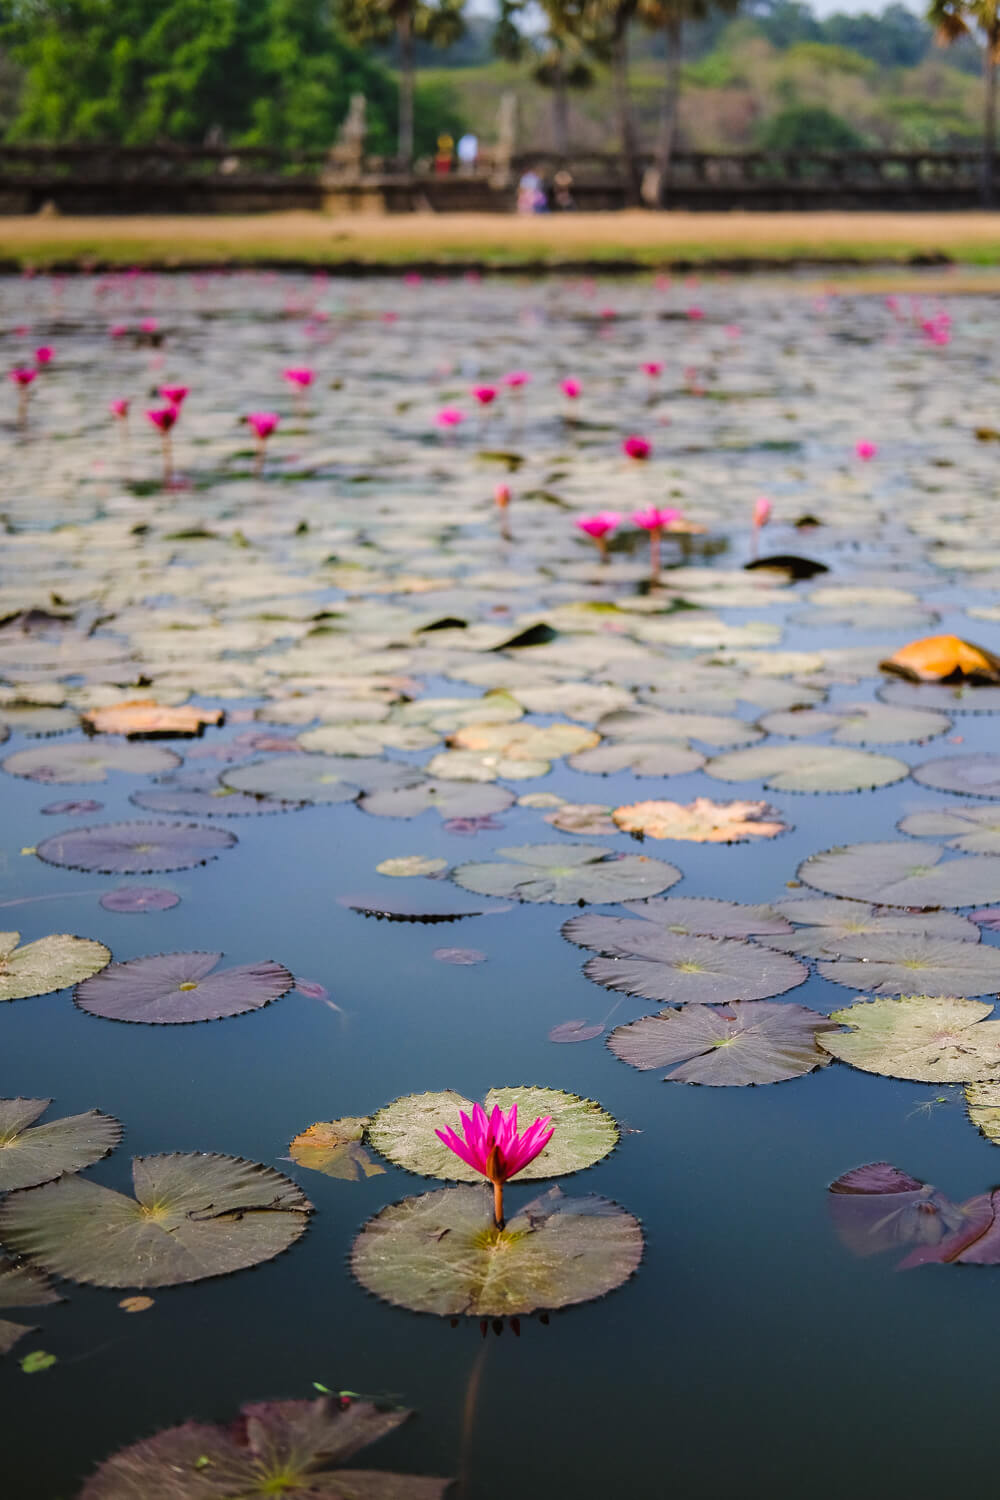 Lily pond outside of Angkor Wat